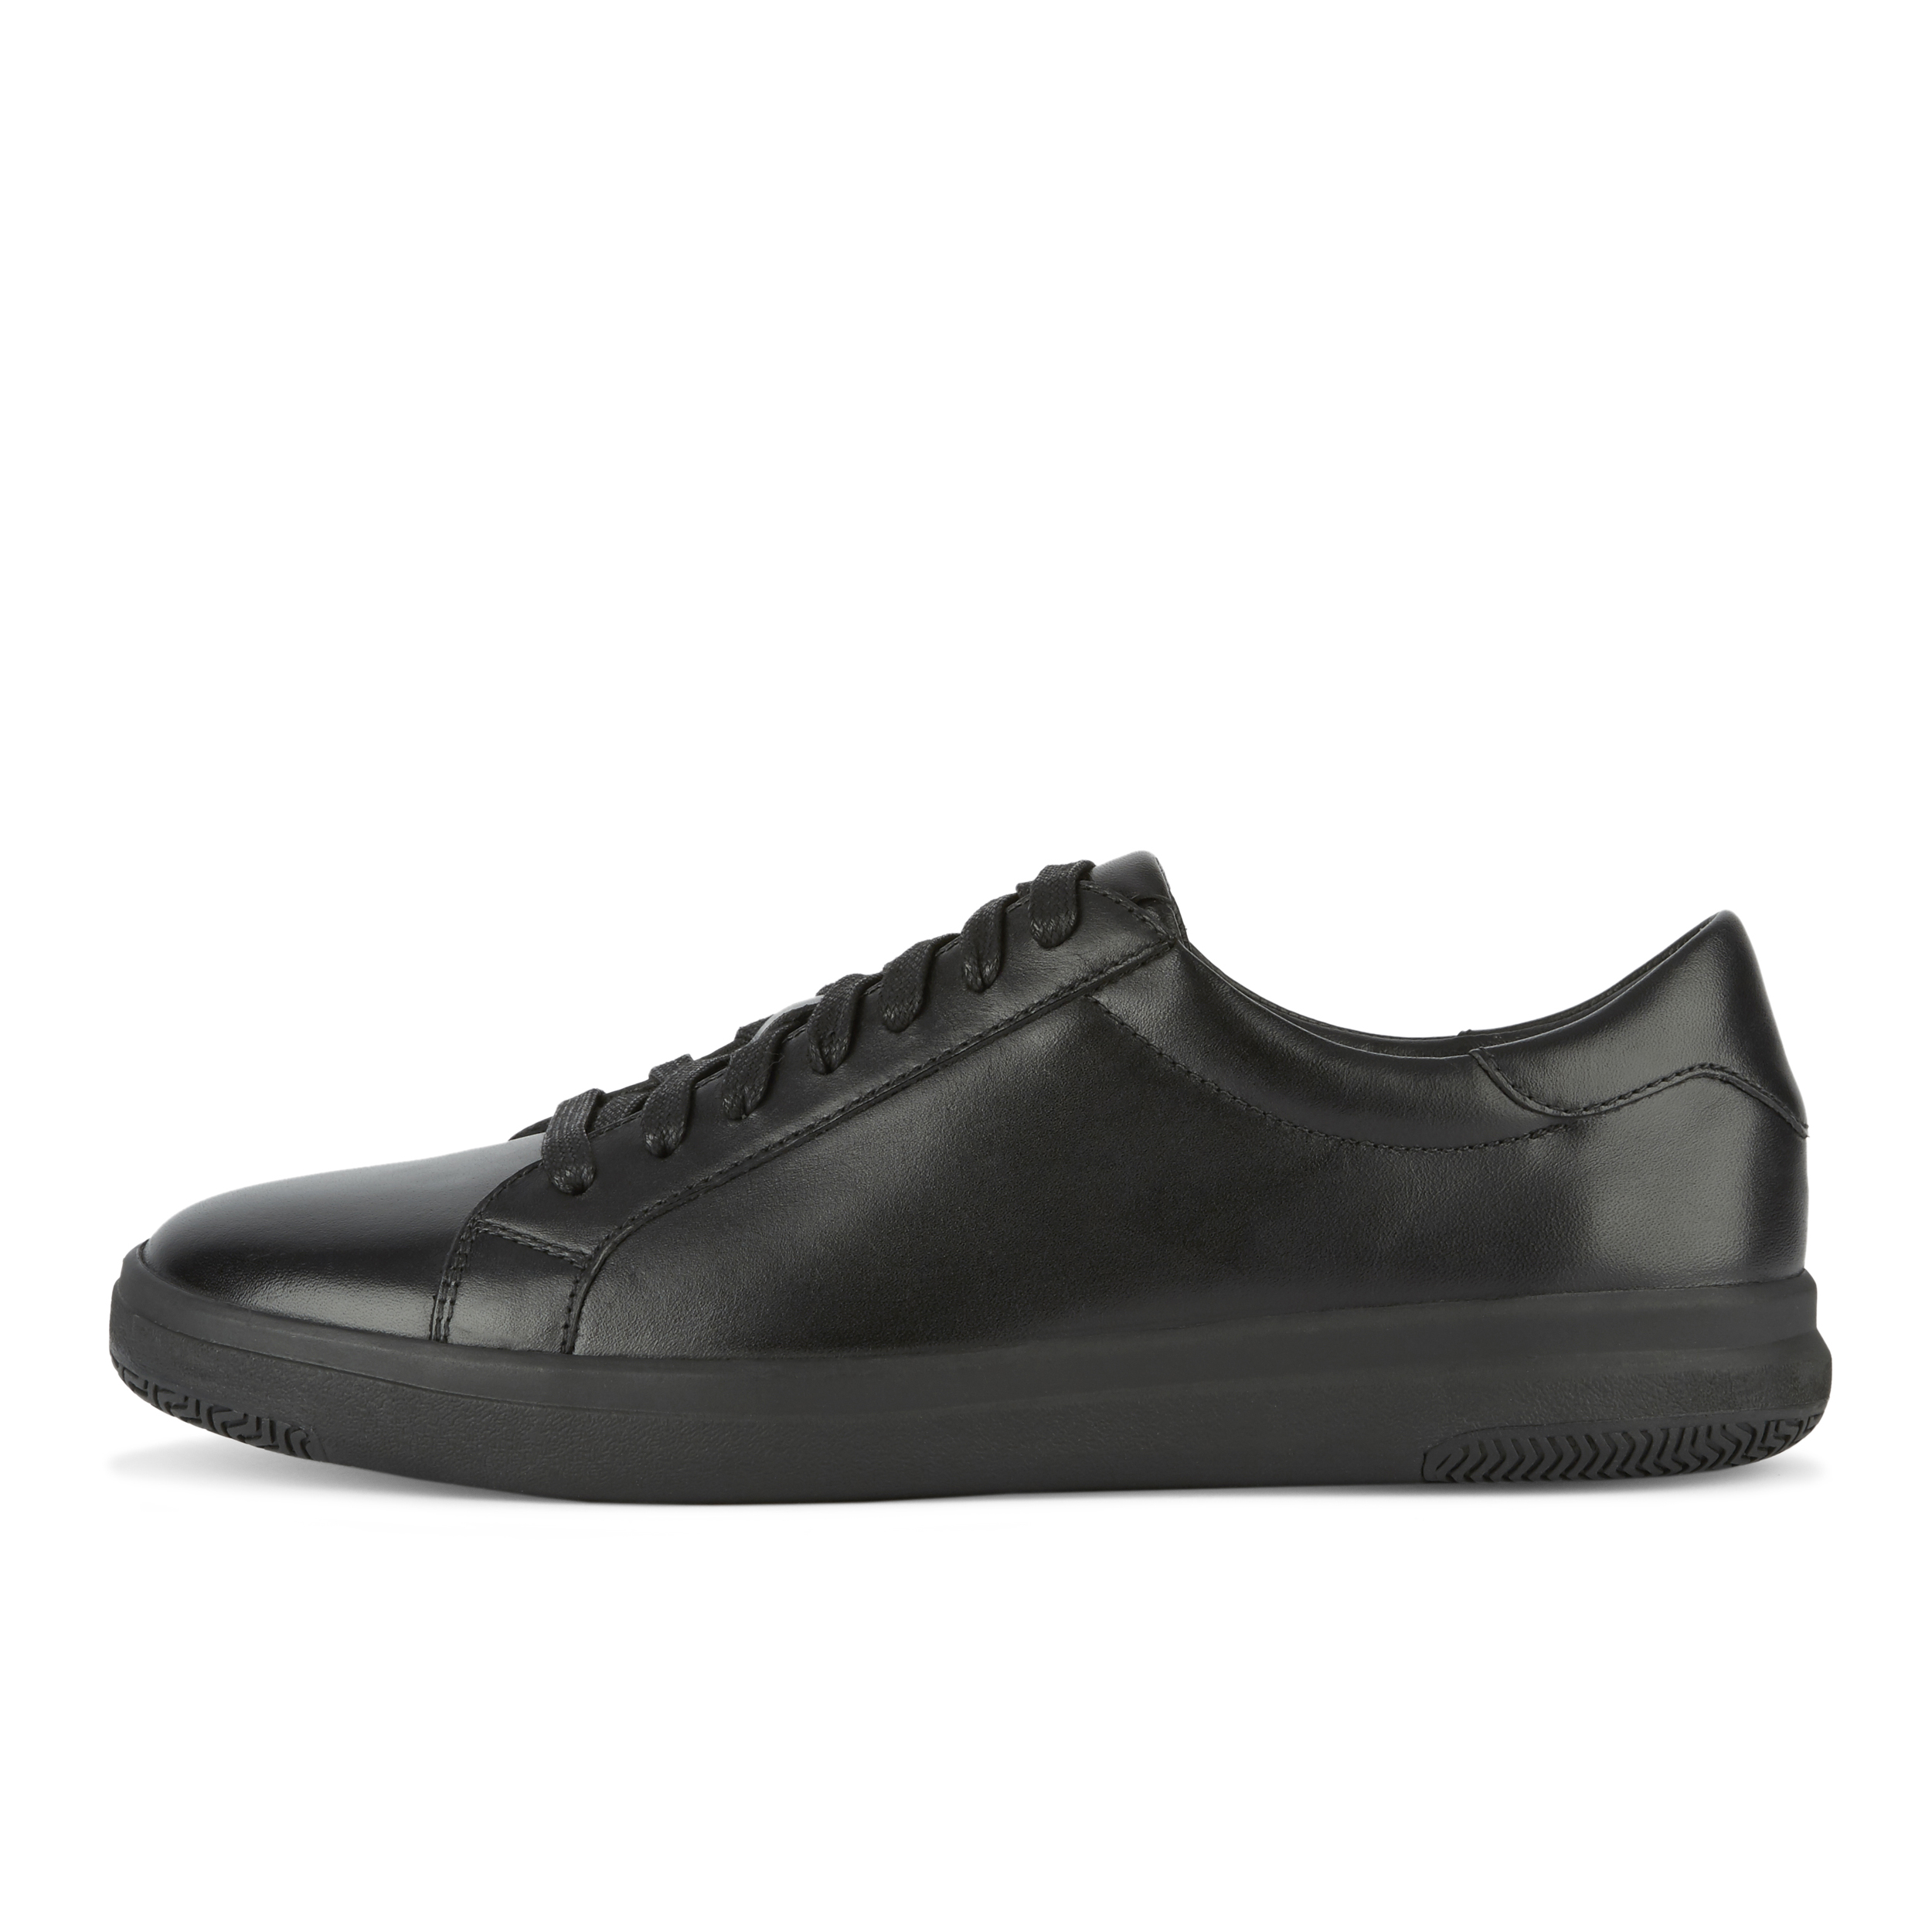 Dockers-Mens-Gilmore-Genuine-Leather-Casual-Fashion-Lace-up-Sneaker-Shoe thumbnail 11